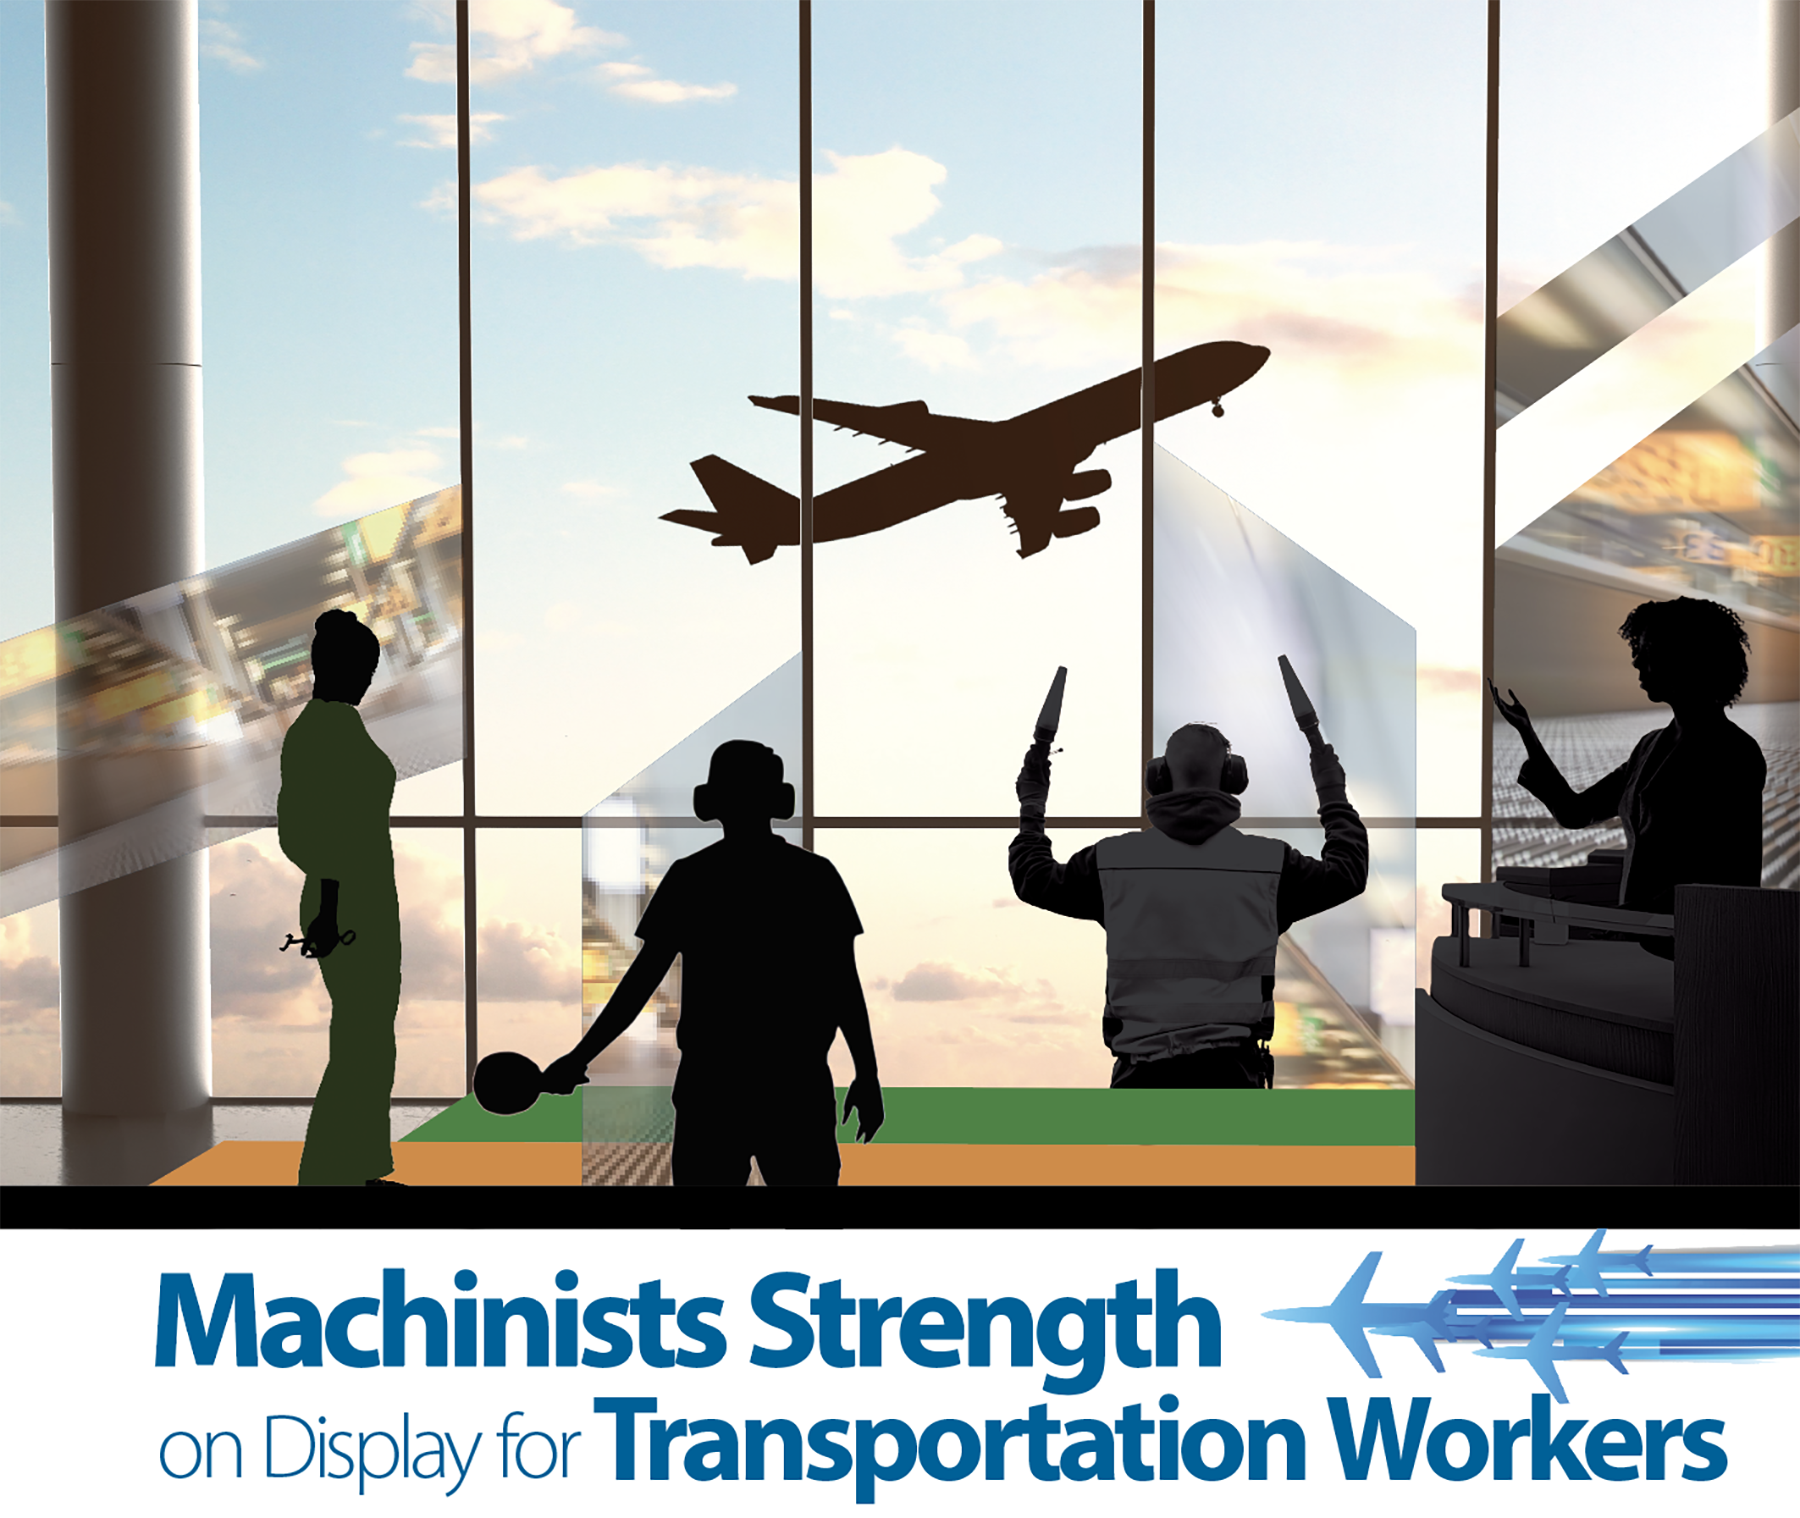 Machinists Strength on Display for Transportation Workers